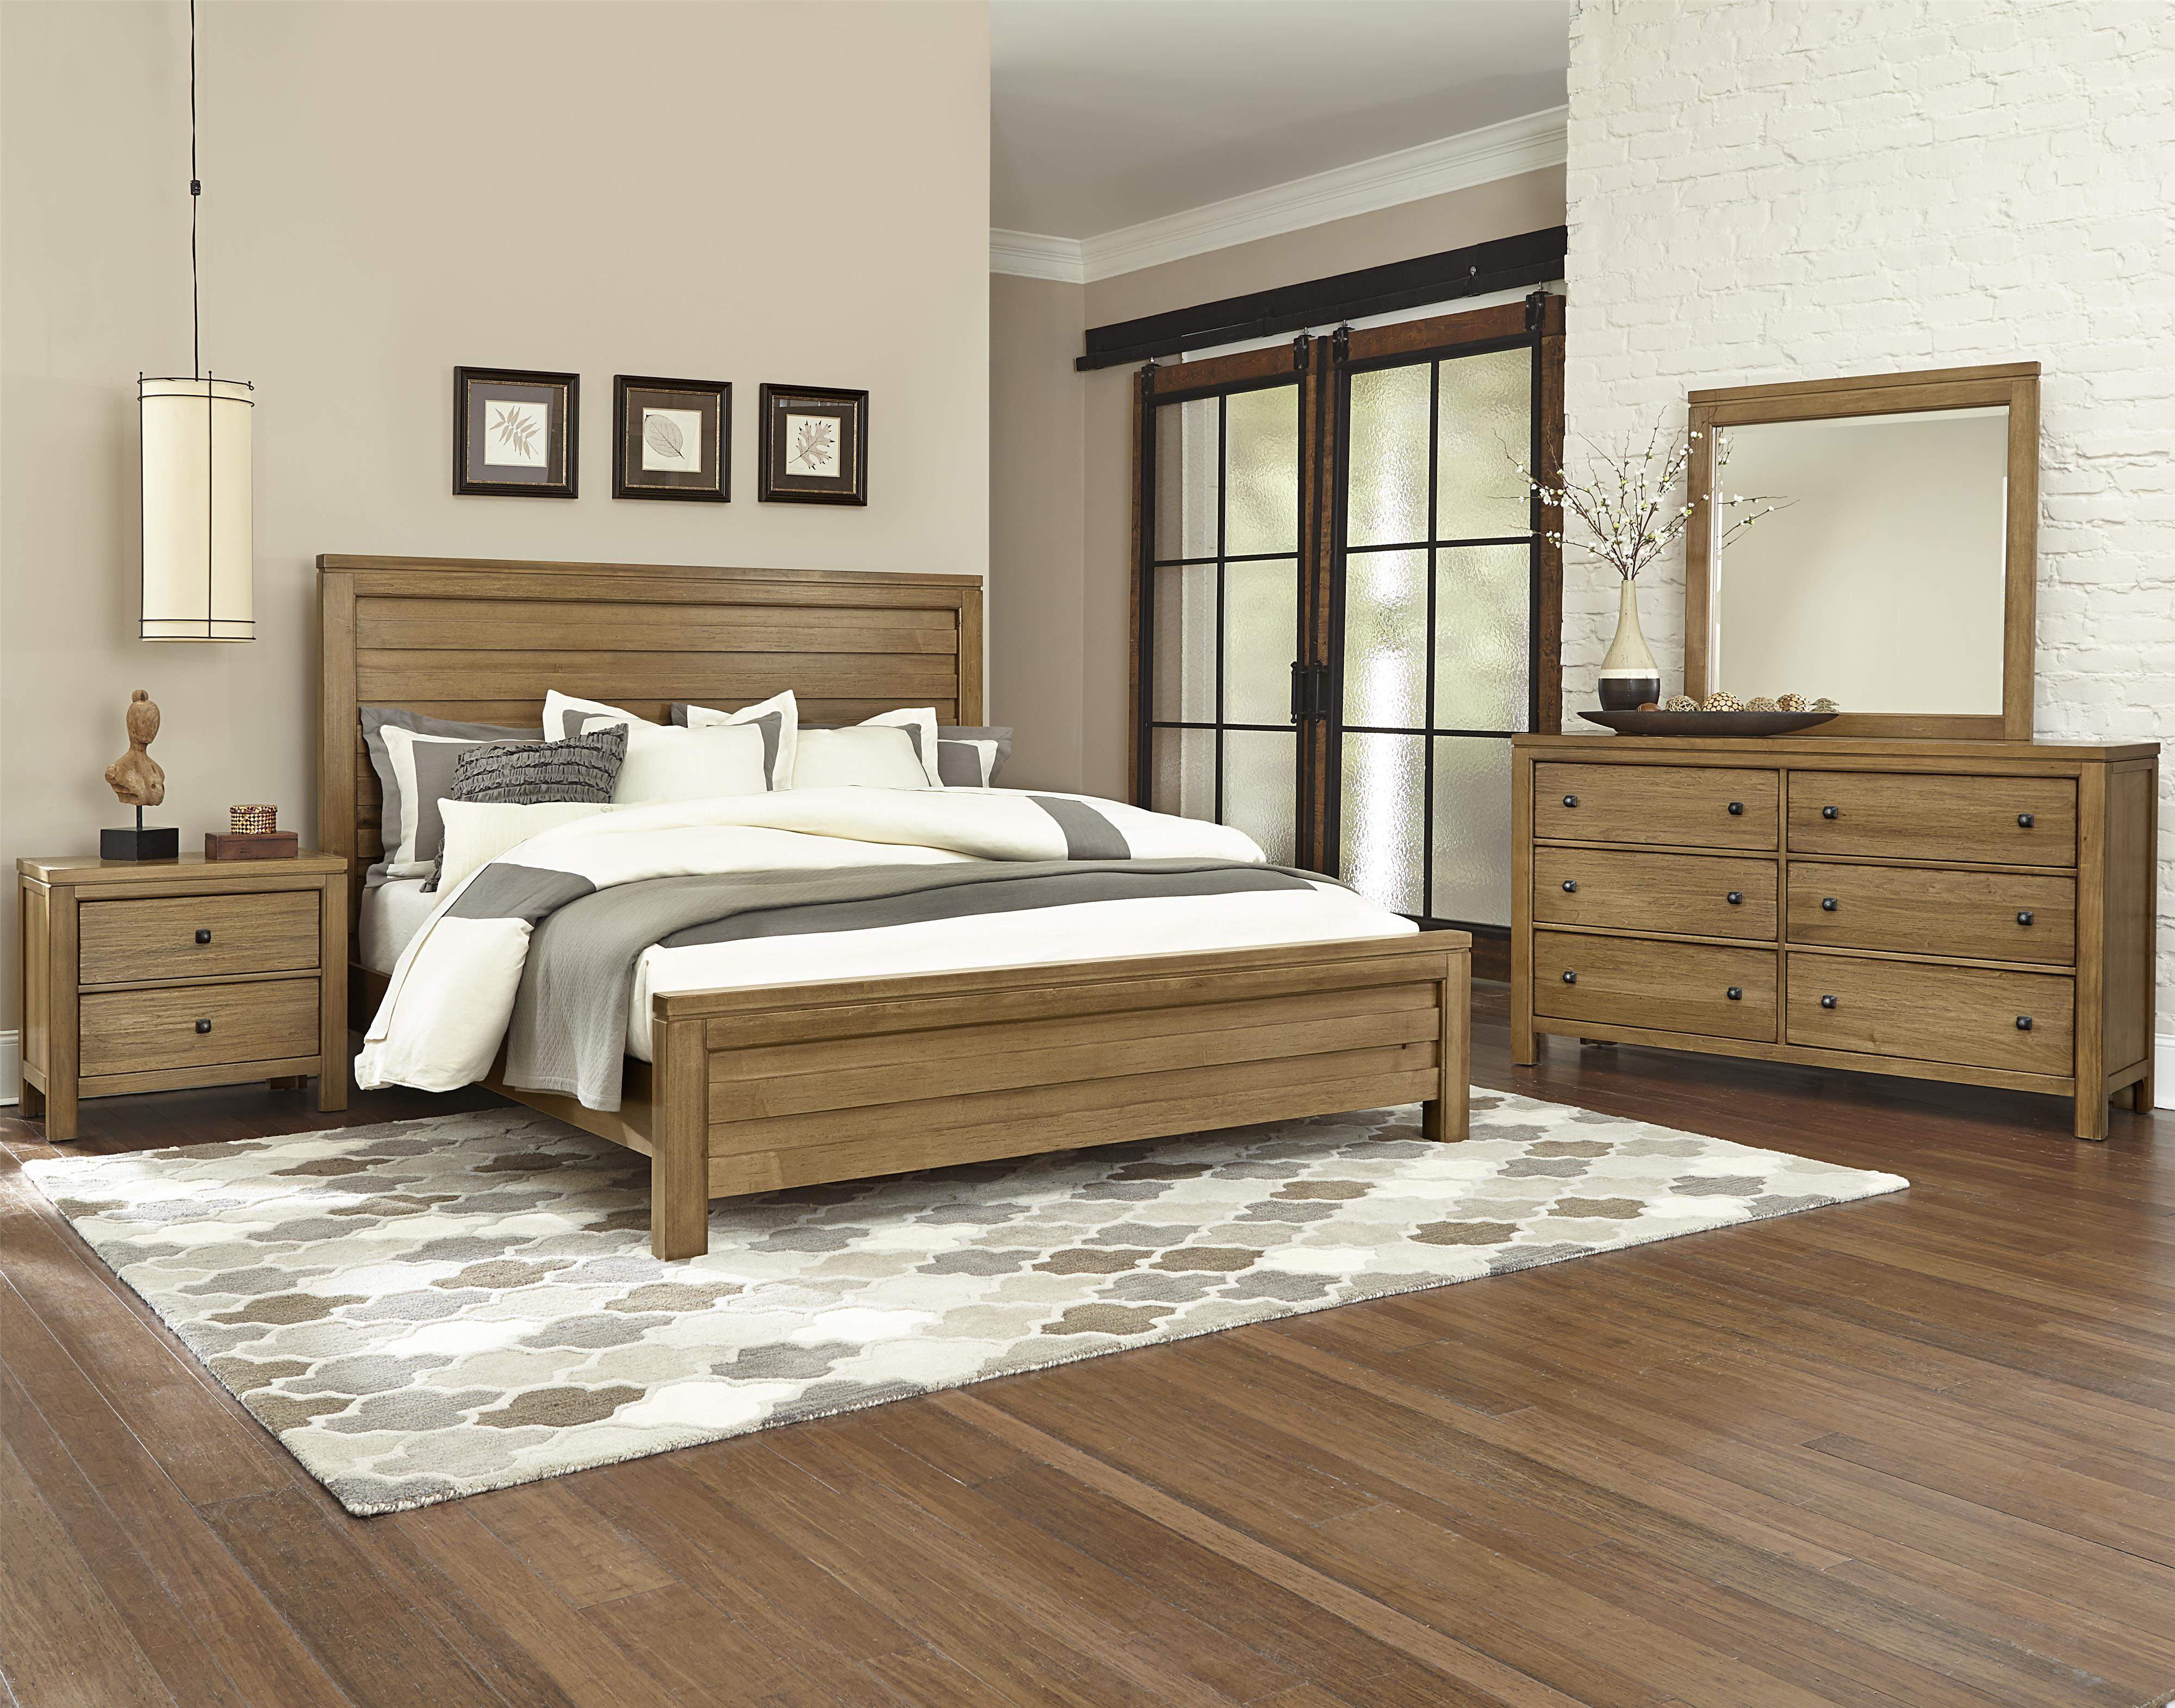 Vaughan Bassett Kismet Queen Bedroom Group - Item Number: 414 Q Bedroom Group 1